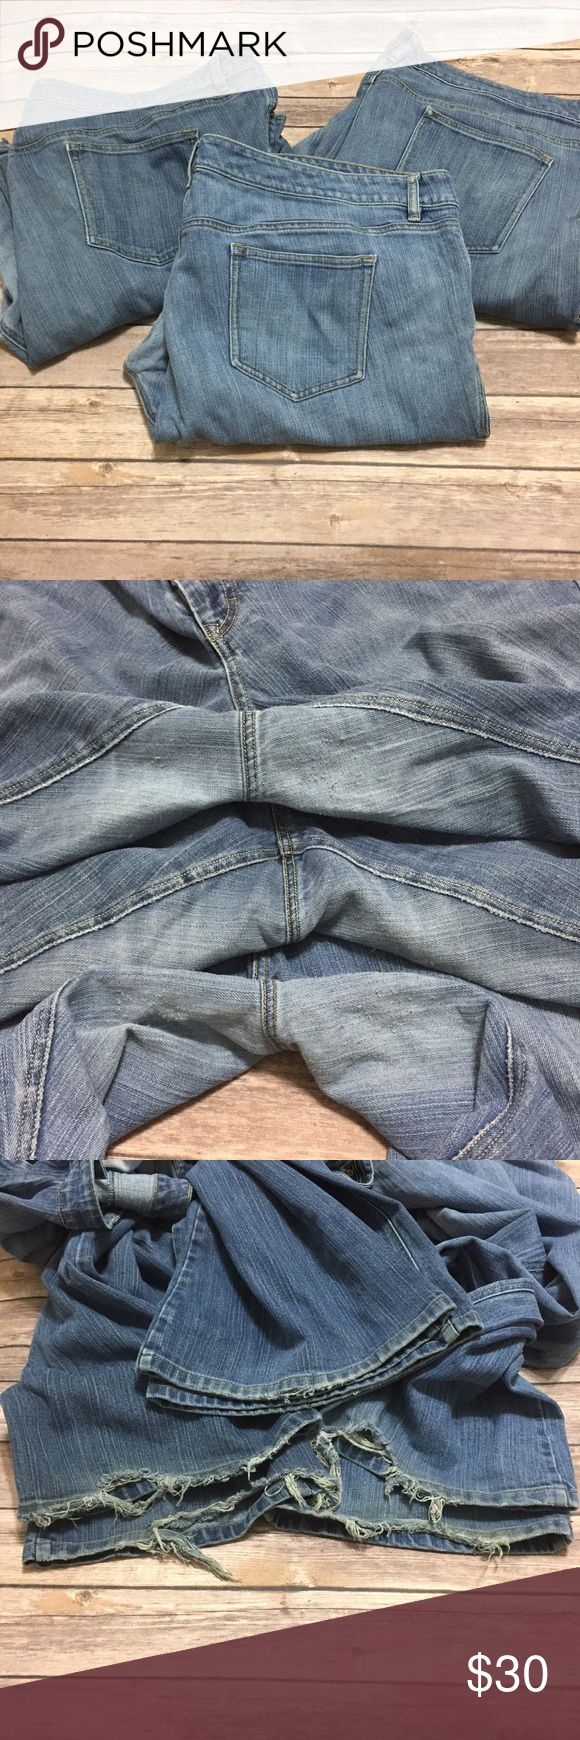 """3 pair lot Old Navy Plus Jeans This listing is for all 3 pair of jeans all size 26 plus long! 2 are low waist flare """"The Diva"""" cut. 1 is just below waist boot cut """"The Flirt"""". All three show signs of wear in the thighs near crotch and all three shows signs of wear at the leg openings (see pics). One of the divas has a tiny hole near the crotch (see pic). See pics for measurements. Won't sell separately. May not accept bundling this listing with others- depends on weight of items total. No…"""